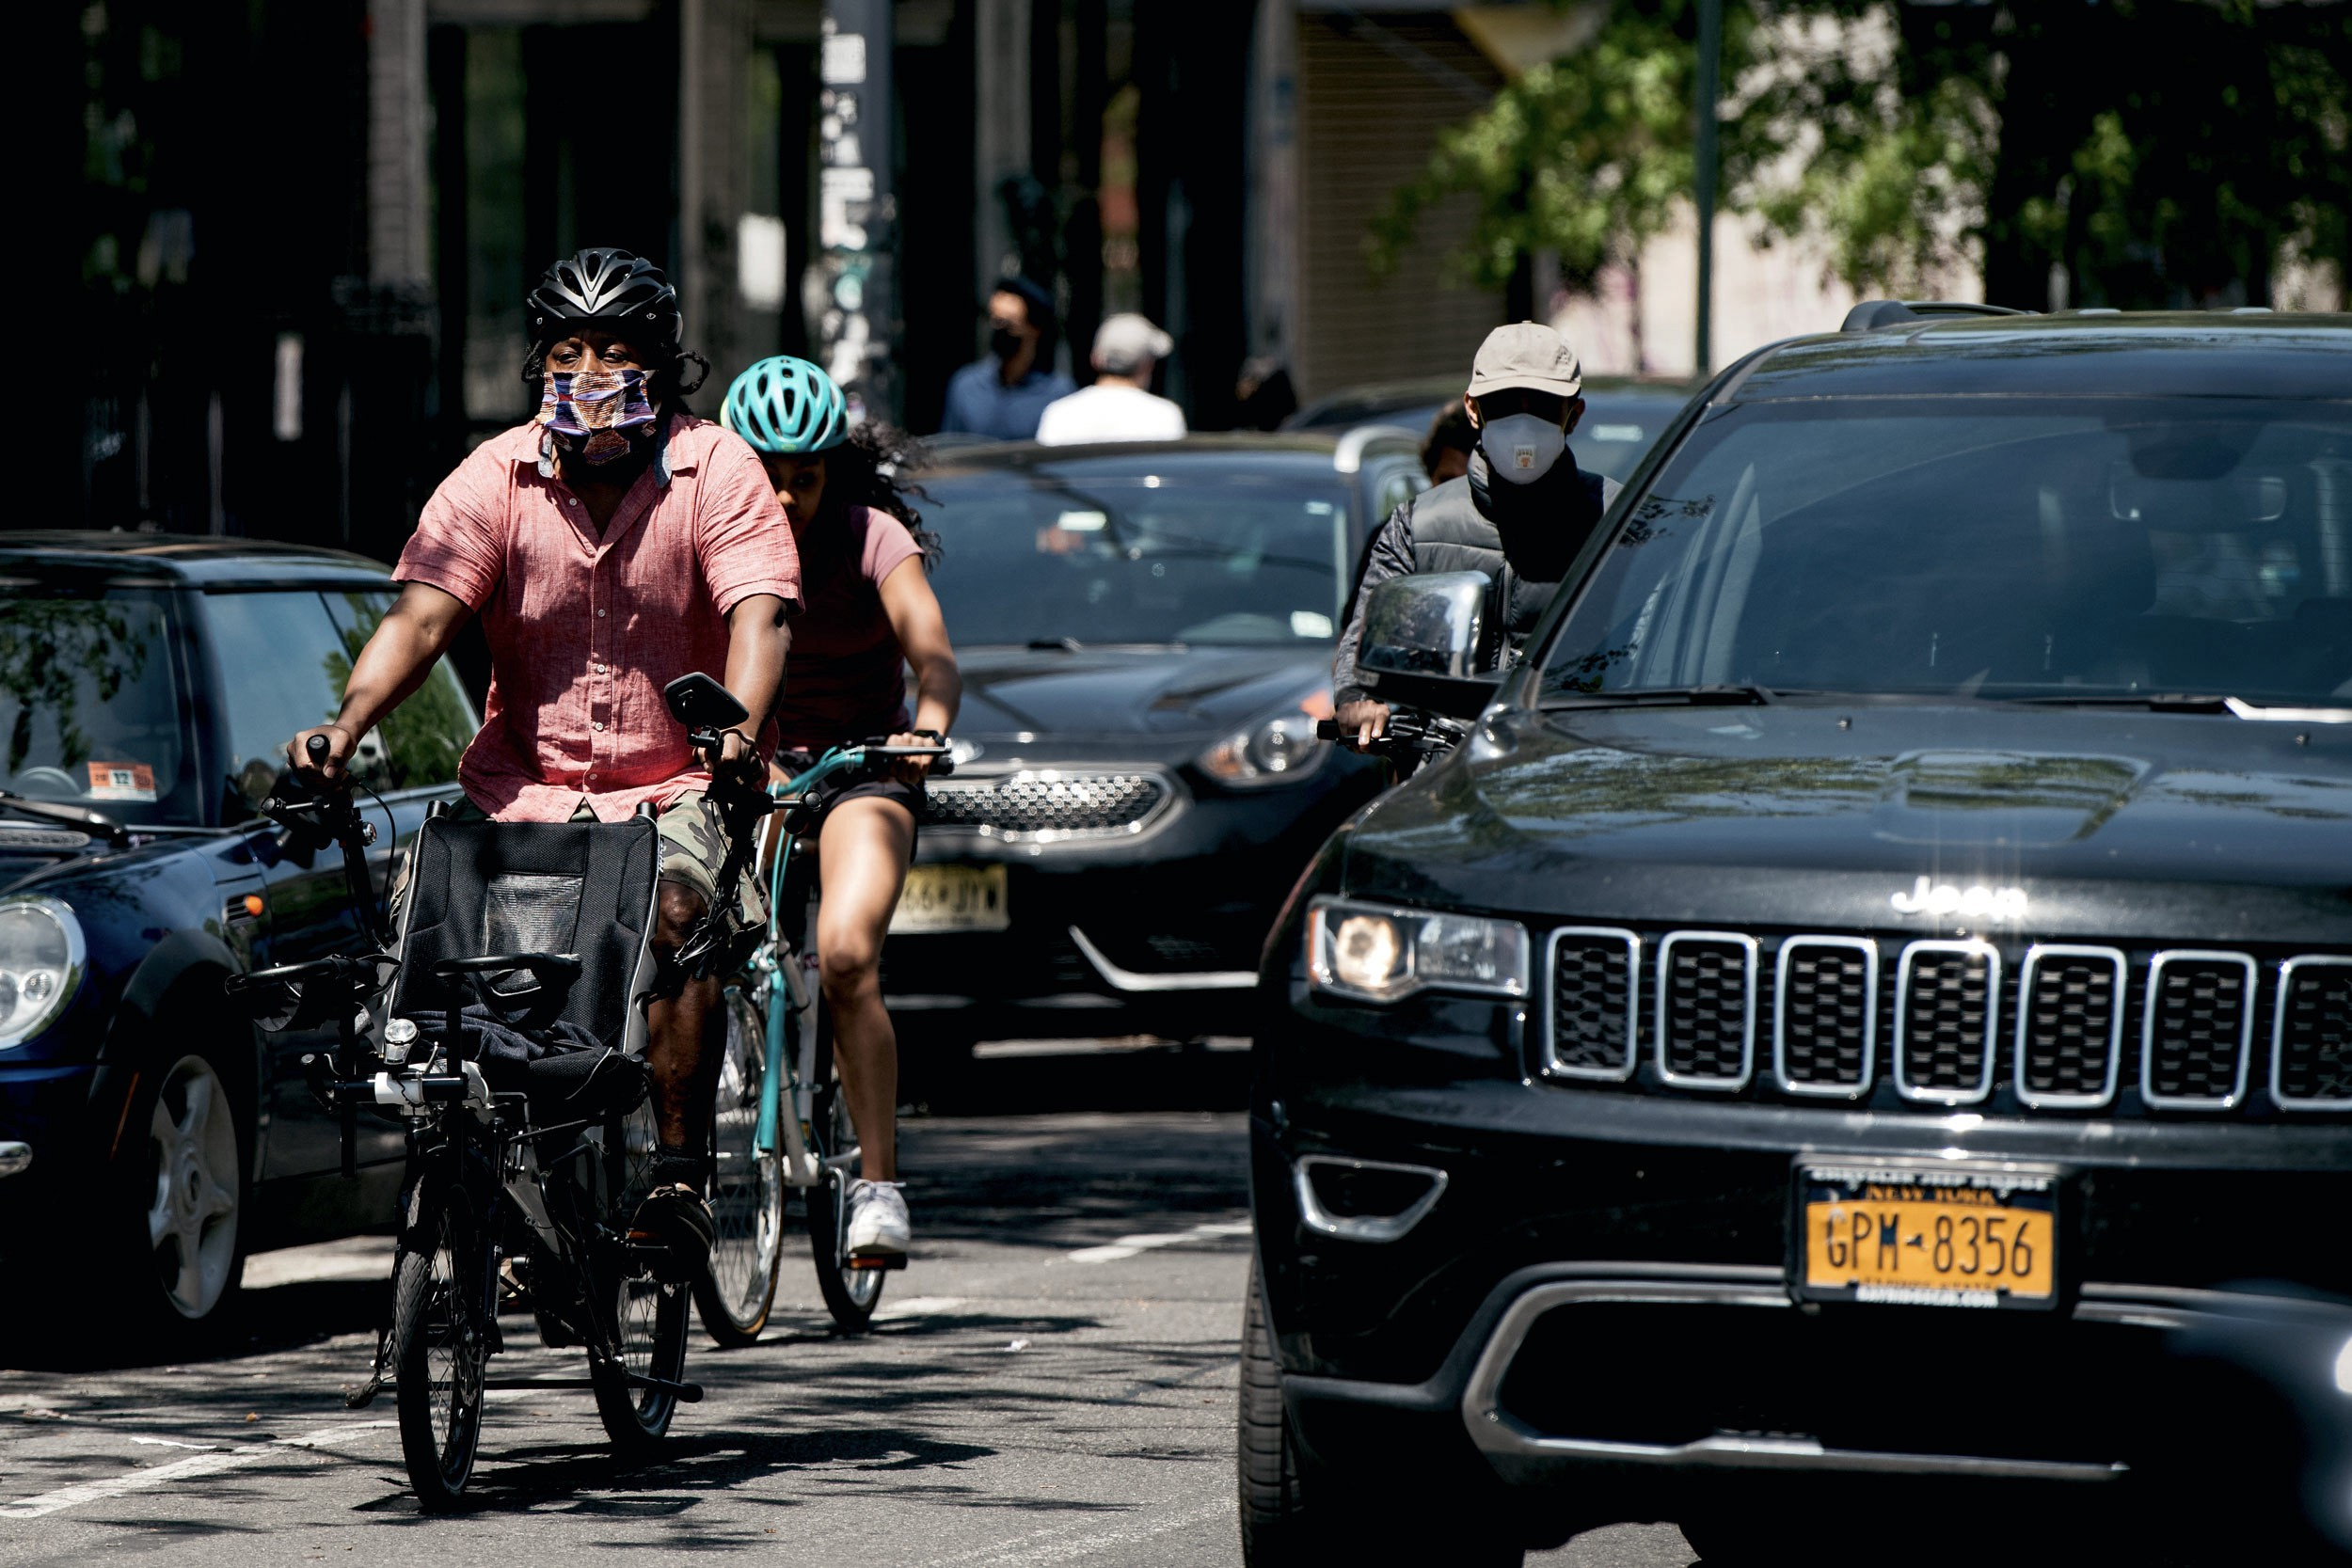 People on bicycles share a narrow street with imposing black SUVs.